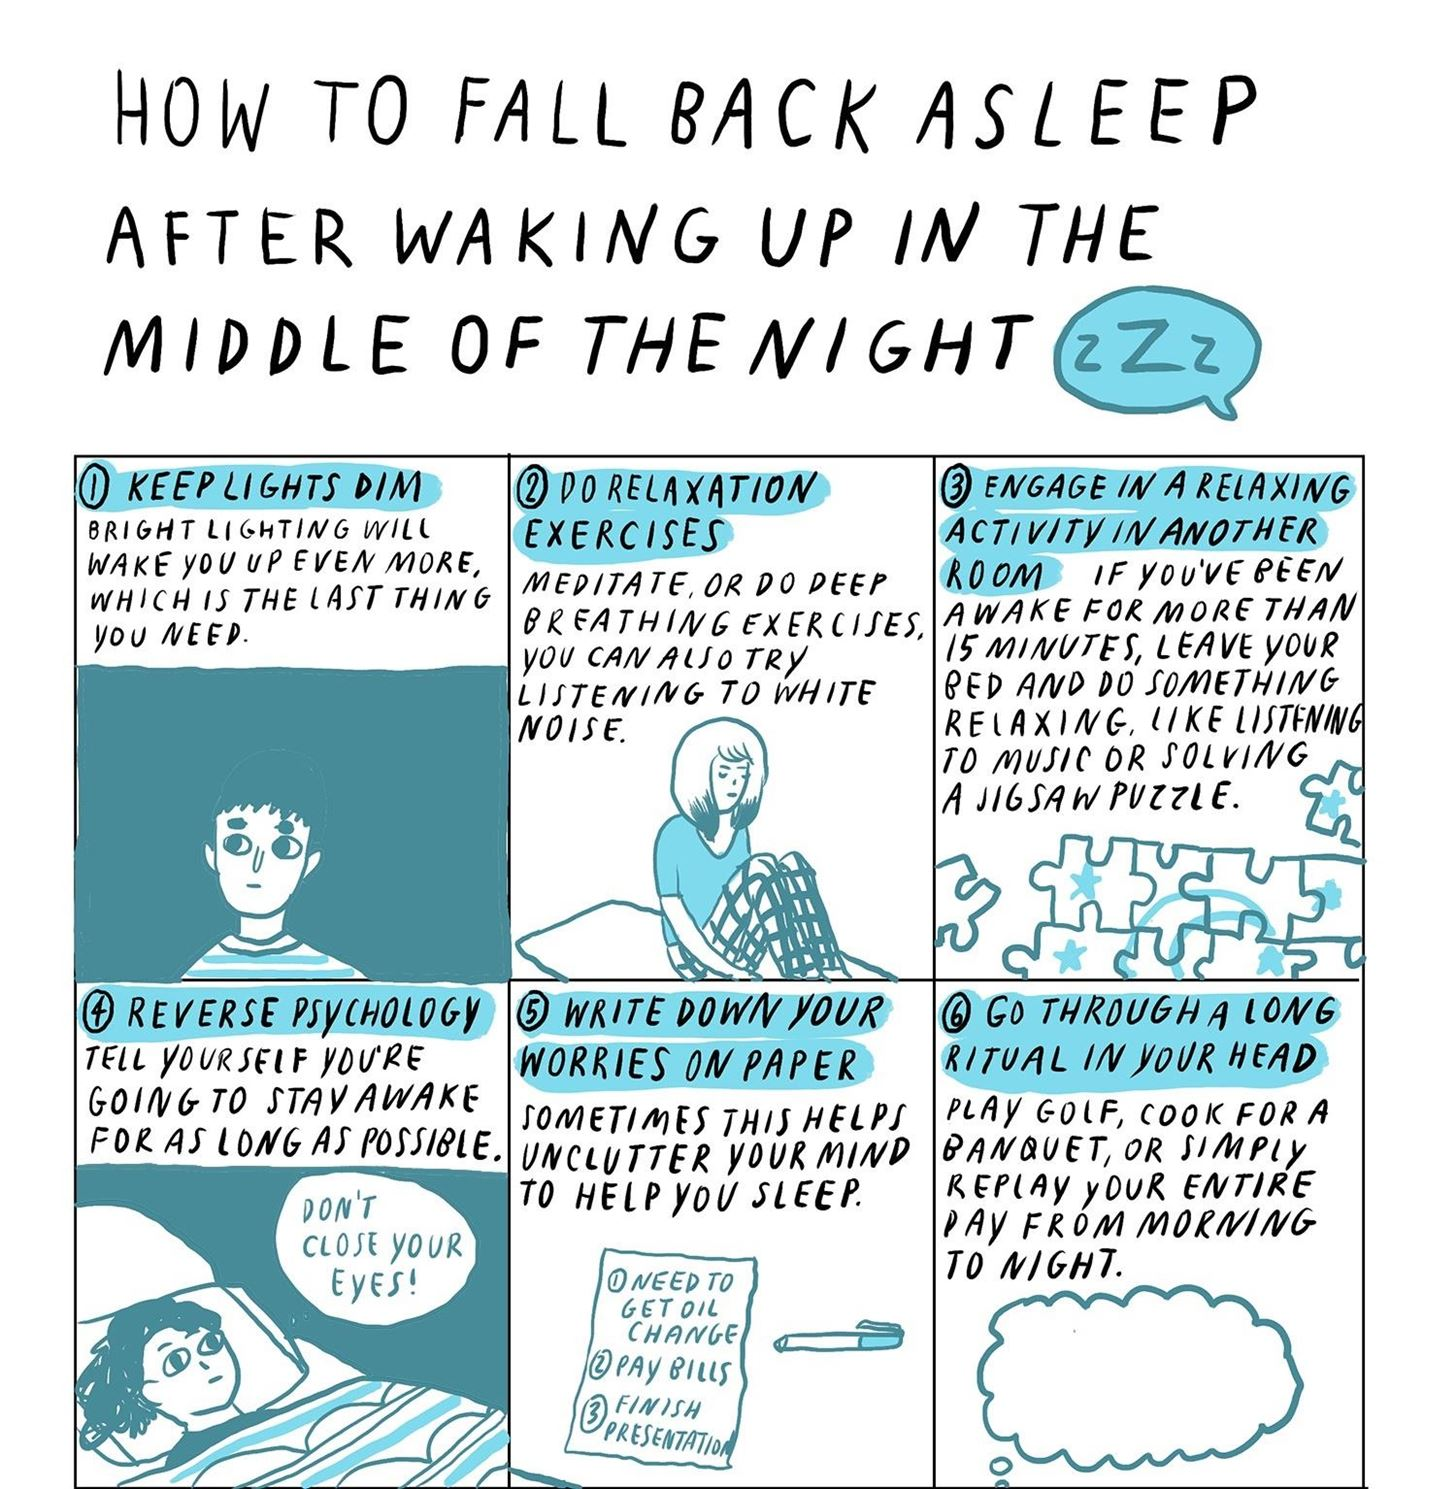 How to Fall Back Asleep After Waking Up in the Middle of the Night